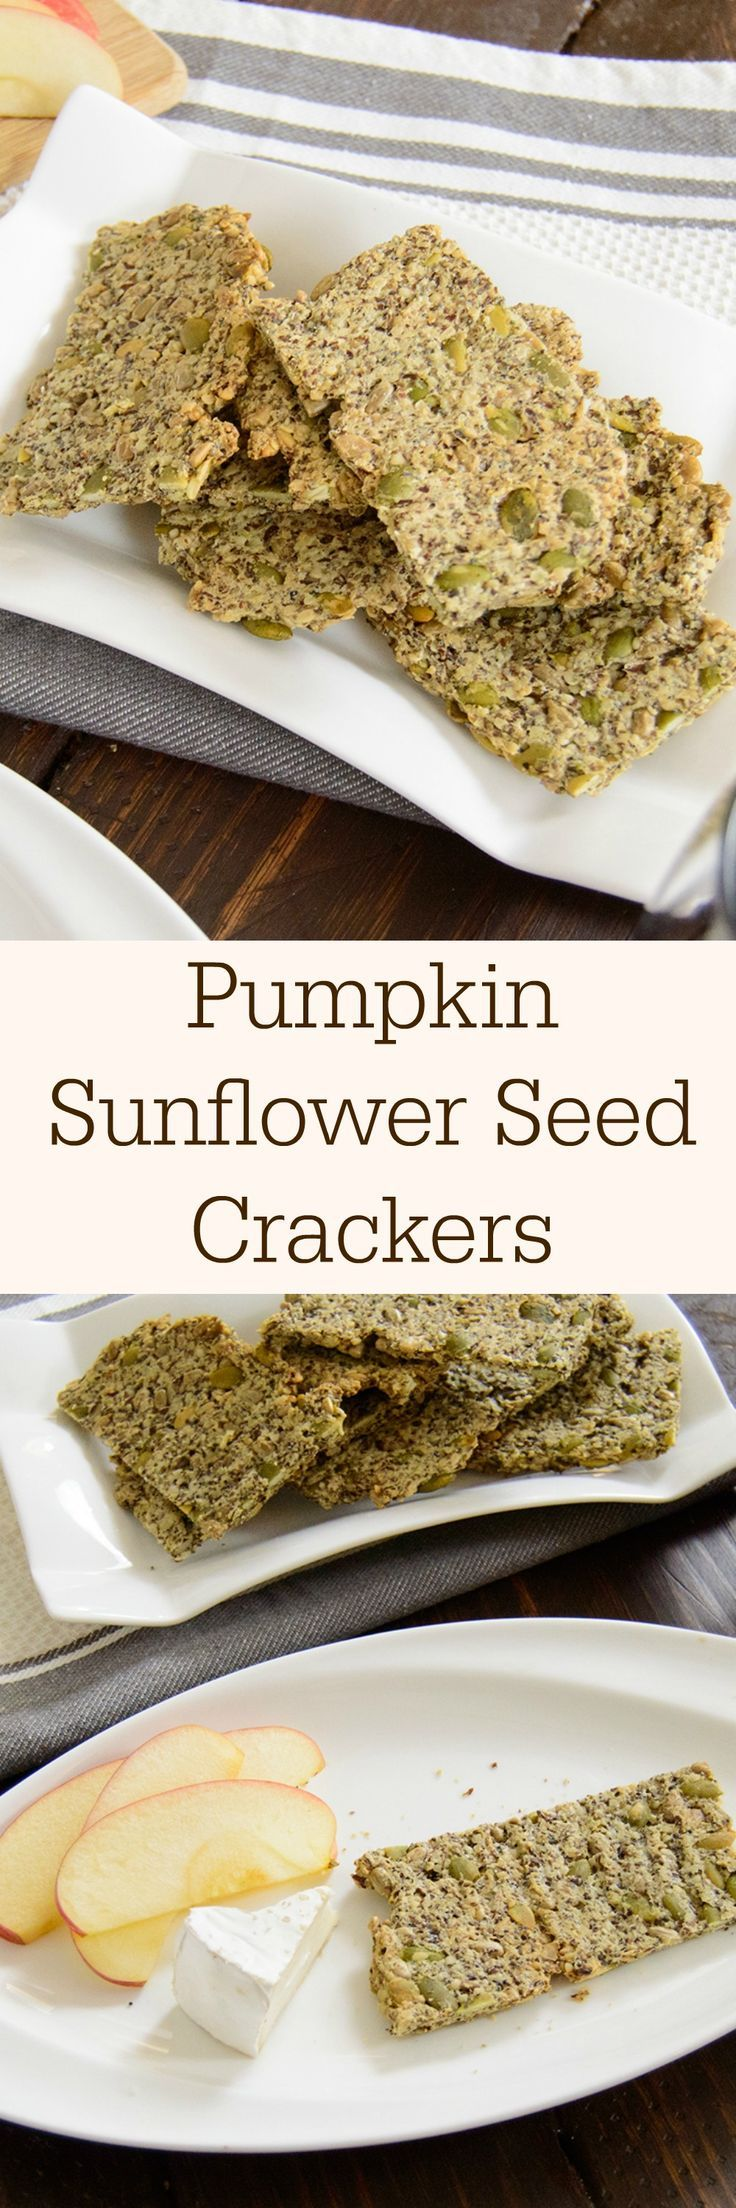 Make your own crackers! These Pumpkin Sunflower Crackers are so easy you won't believe it! This gluten free, vegan recipe recipe is so simple, you will never have to buy crackers again!